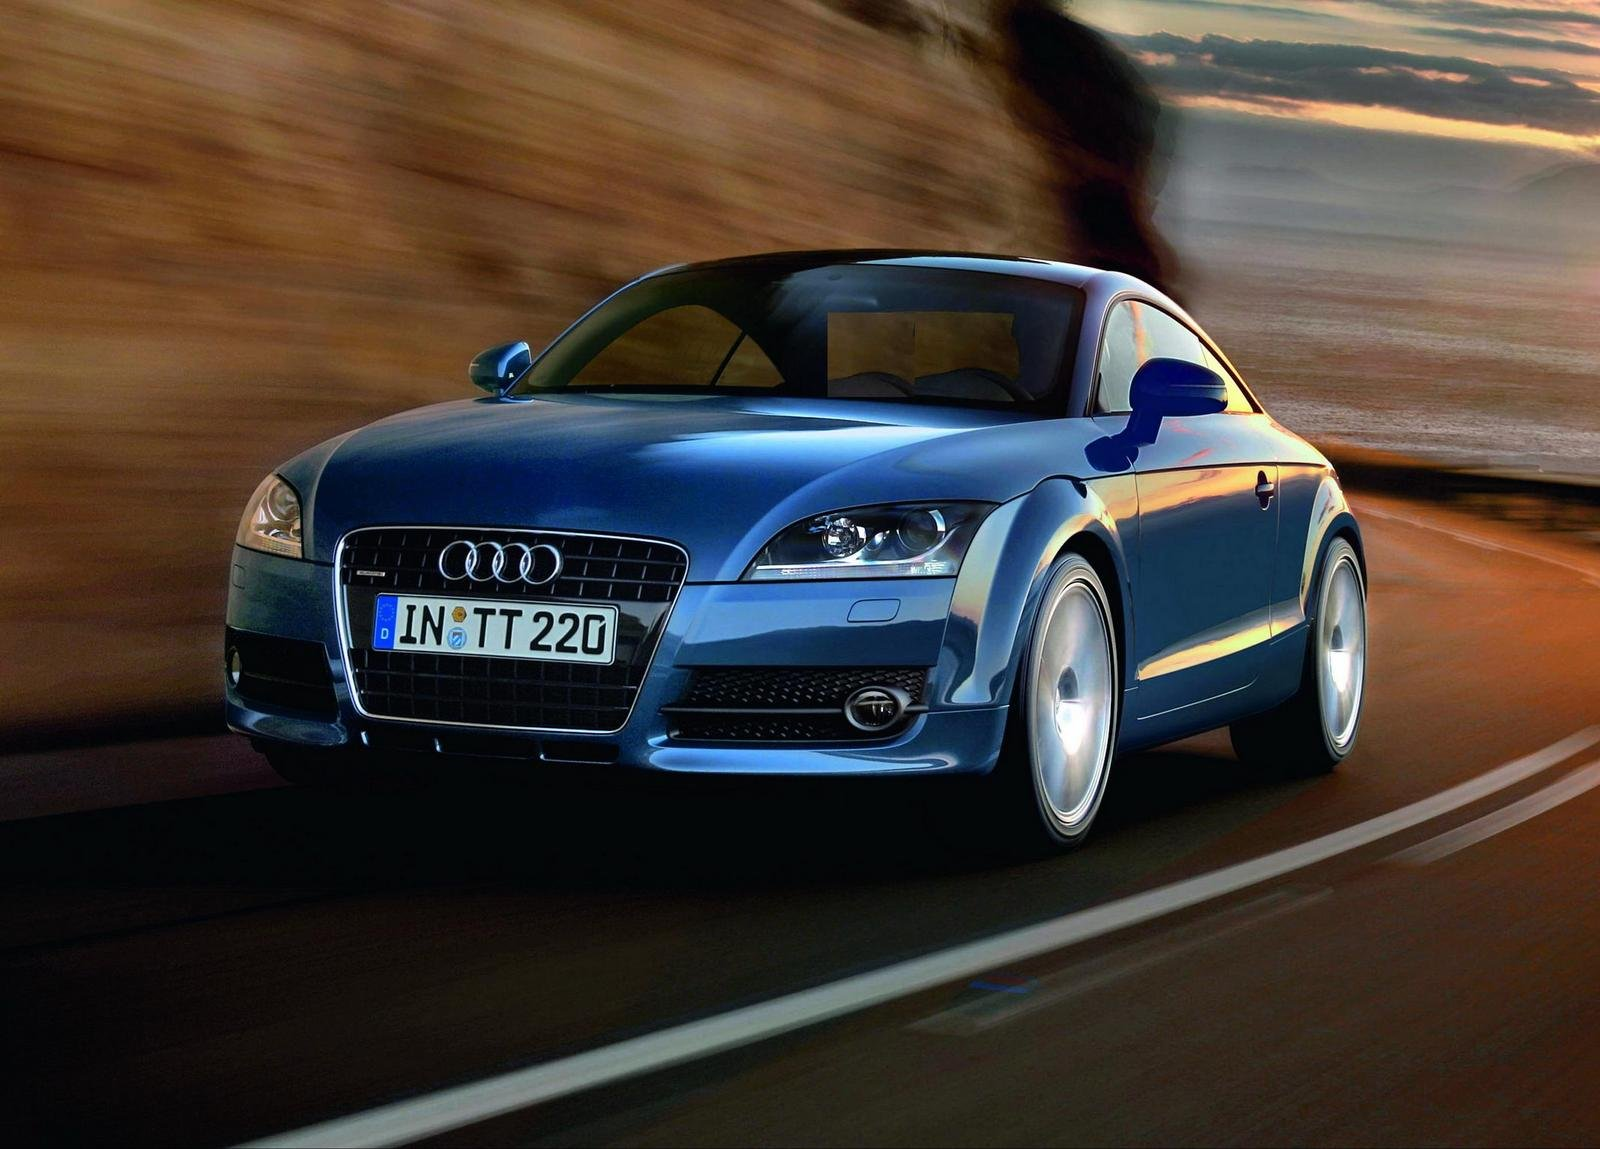 2008 audi tt 2 0 tfsi quattro review gallery top speed. Black Bedroom Furniture Sets. Home Design Ideas